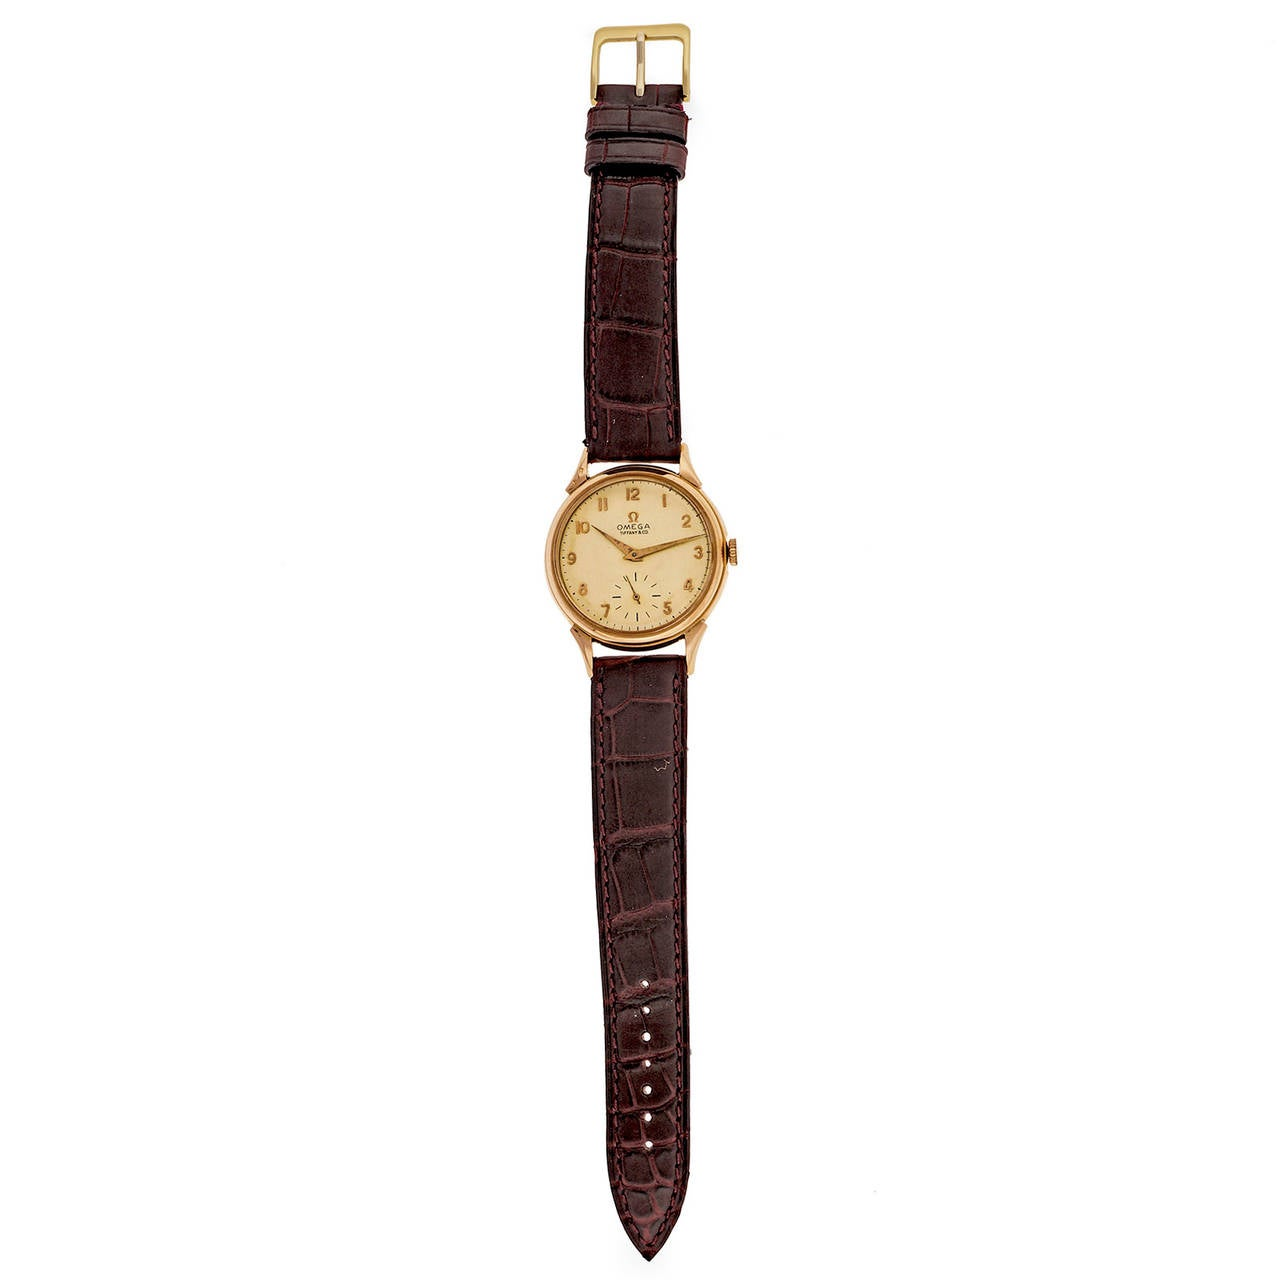 Omega 18k Rose Gold Wristwatch Retailed by Tiffany & Co circa 1960s  18k rose gold Length: 44mm Width: 35.5mm Strap width at case: 18mm Case thickness: 10mm Dial: Omega Tiffany & Co Movement: Omega Swiss 17 jewels 266 138883897  All of our